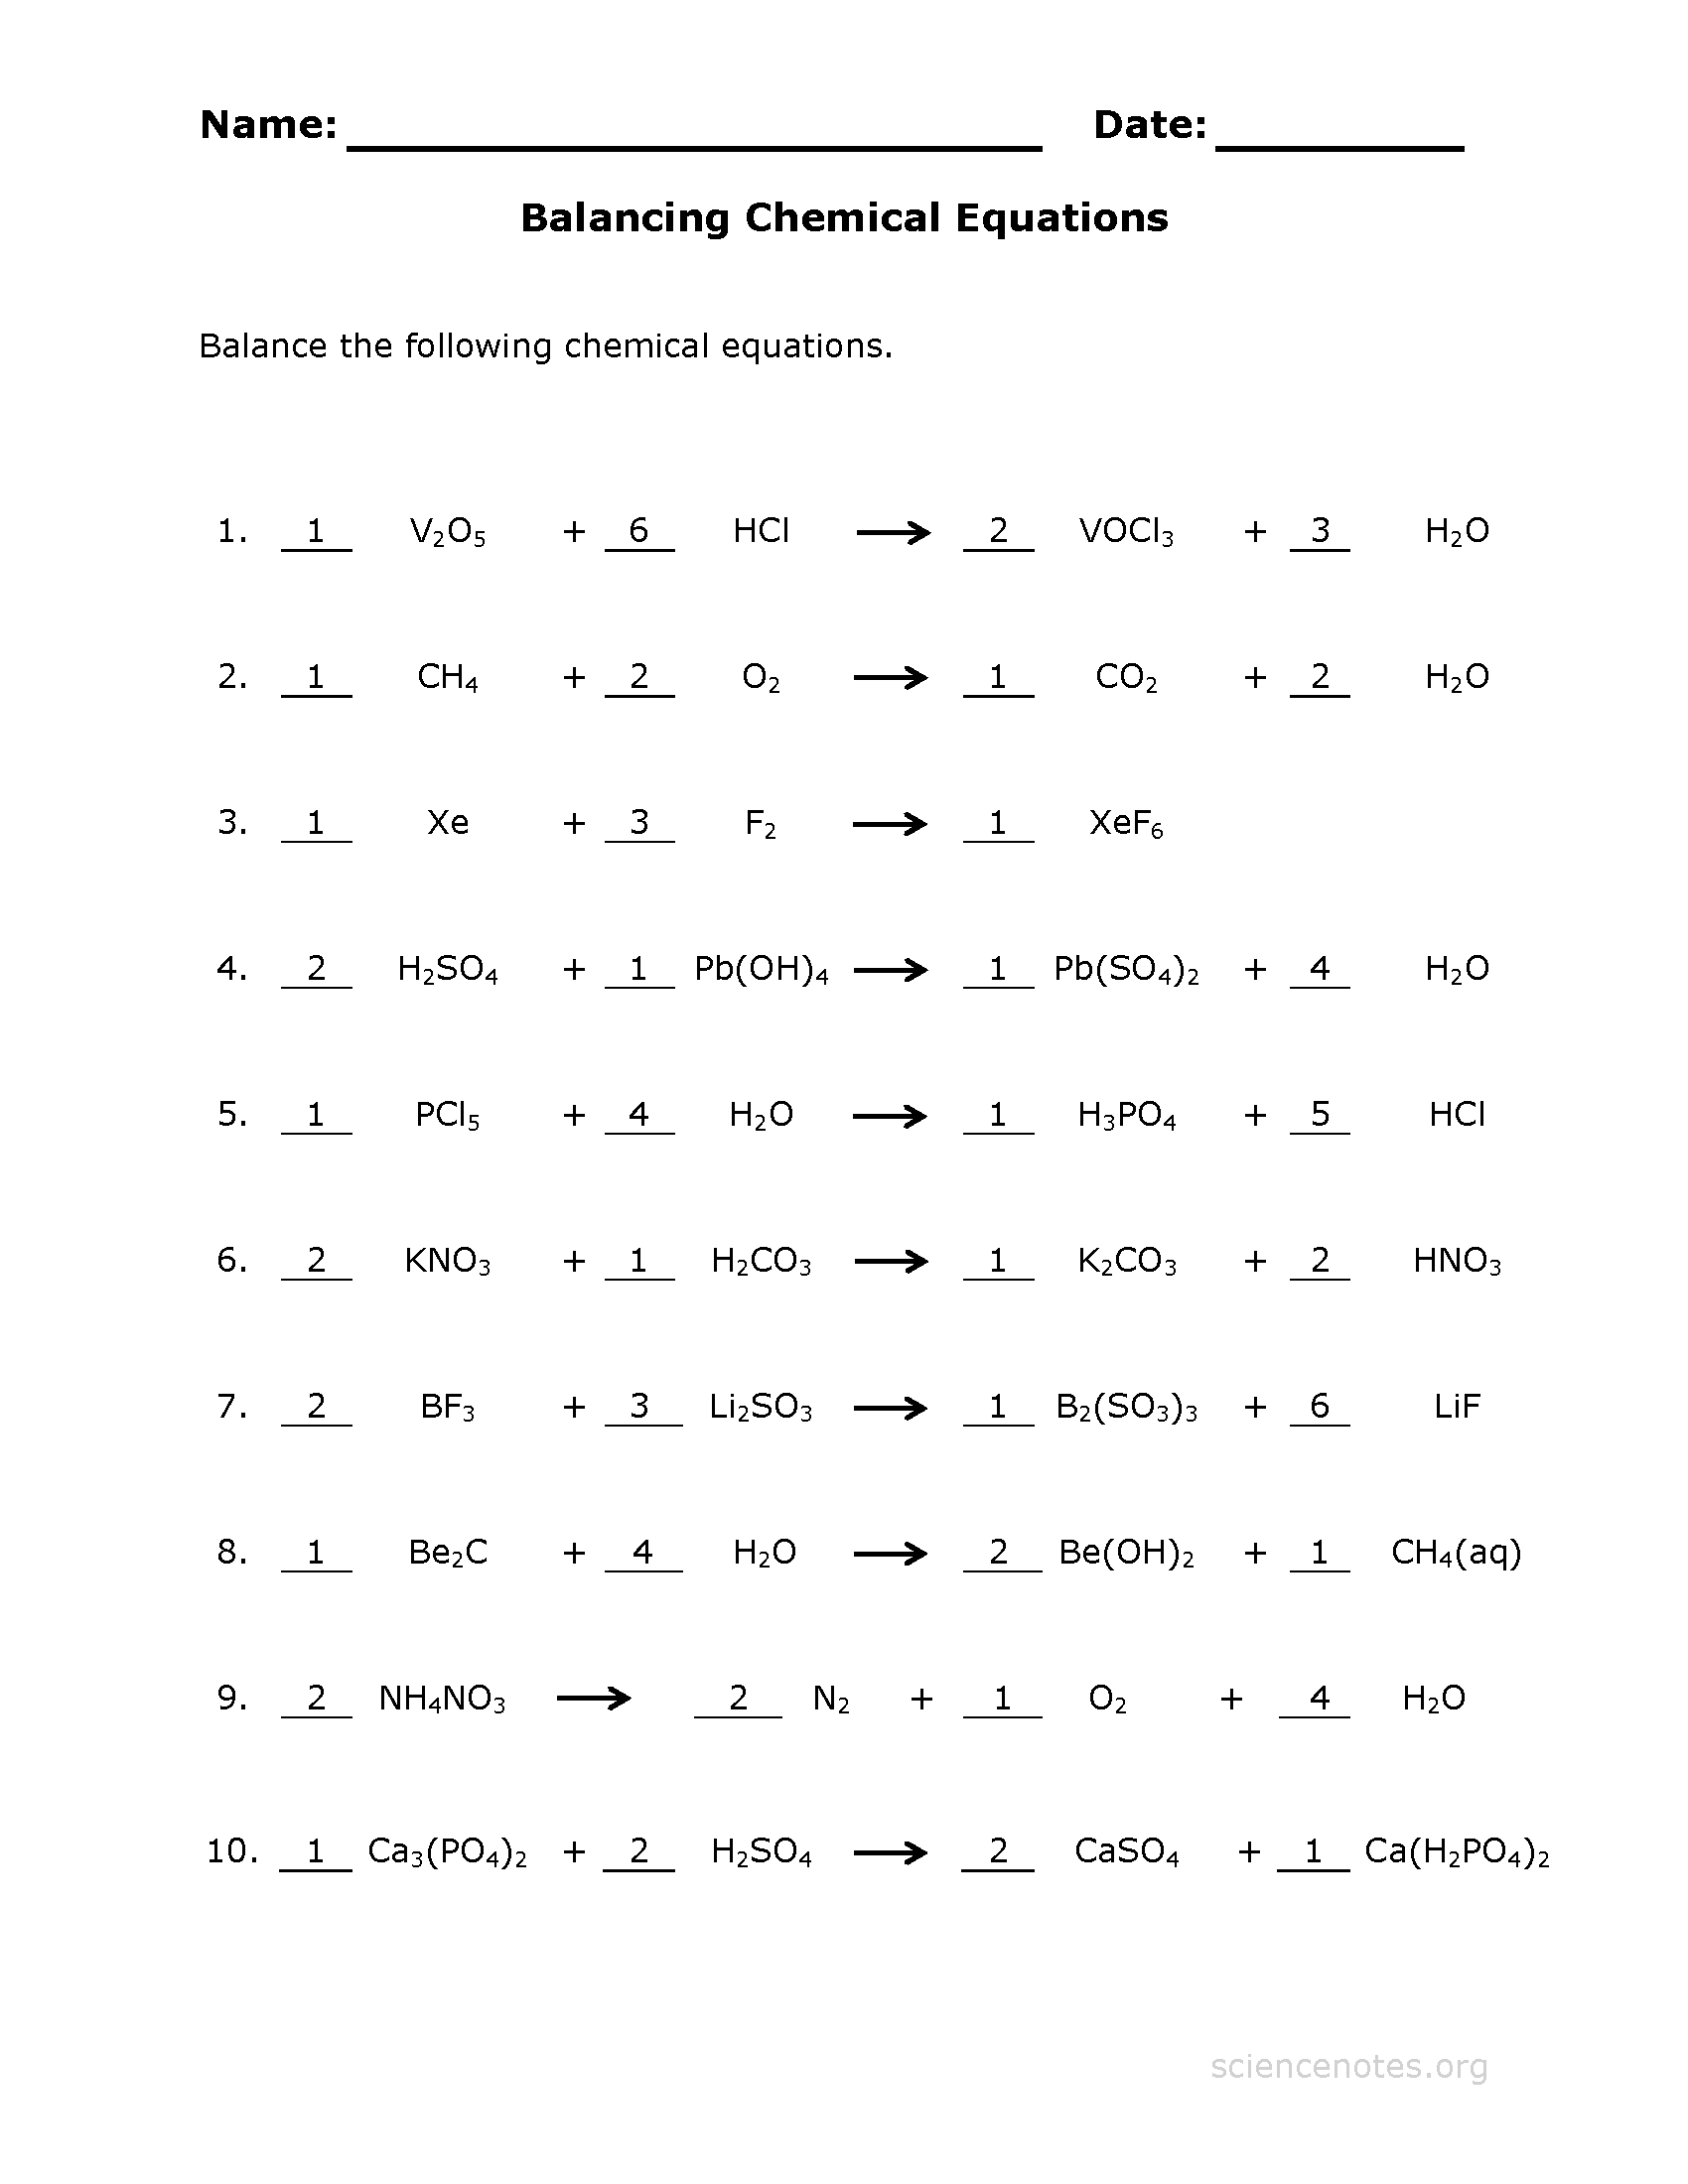 Worksheets Balancing Equations Worksheet Answers balancing chemical equations worksheet 3 answers sharebrowse balance answer key science notes